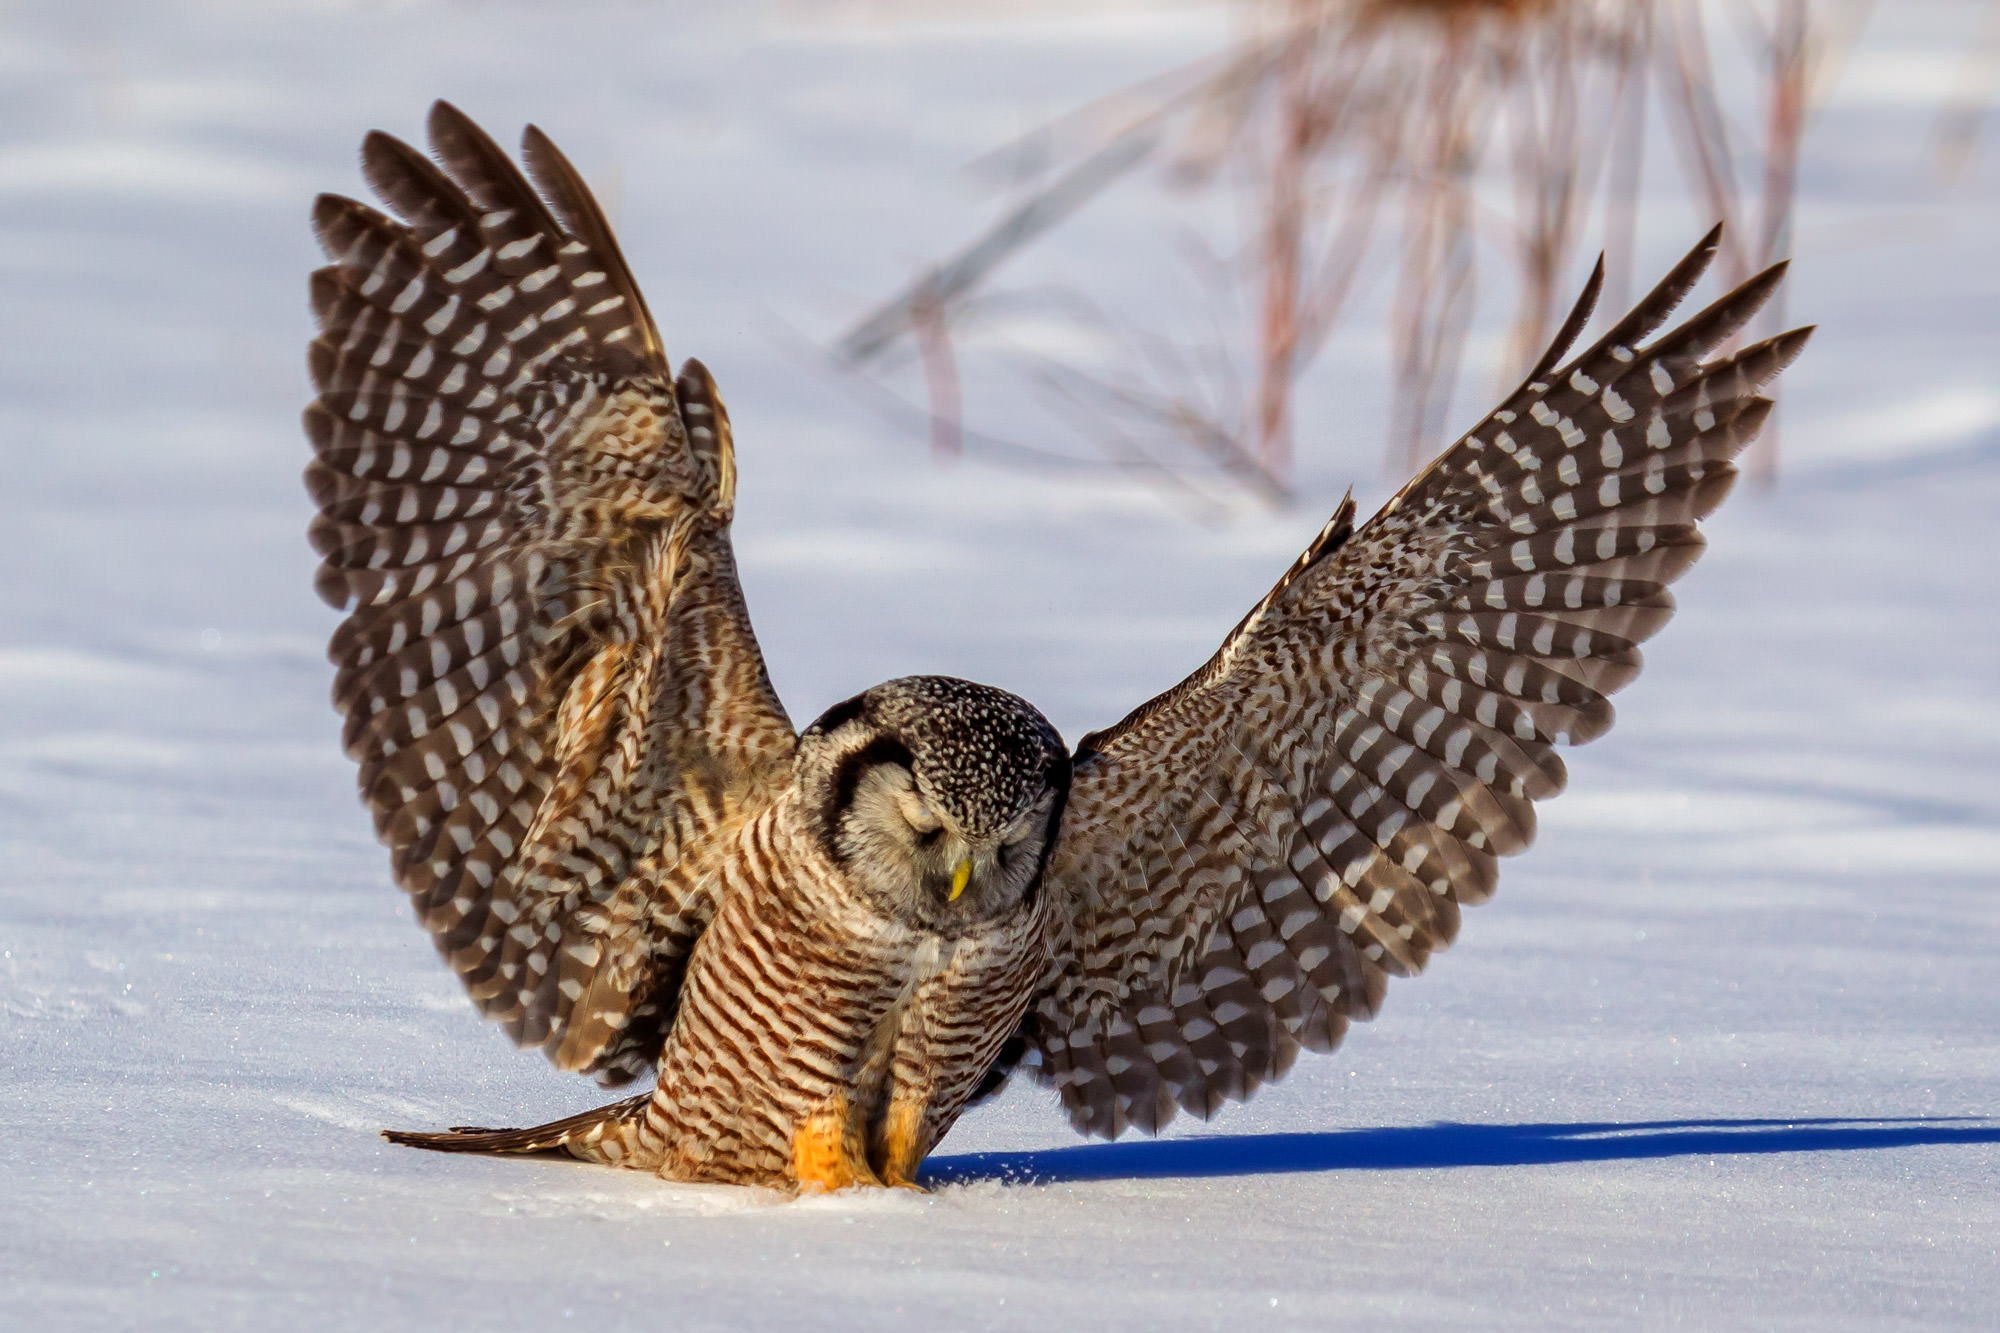 Owl, Hawk Owl, Northern Hawk Owl, Canada, photo